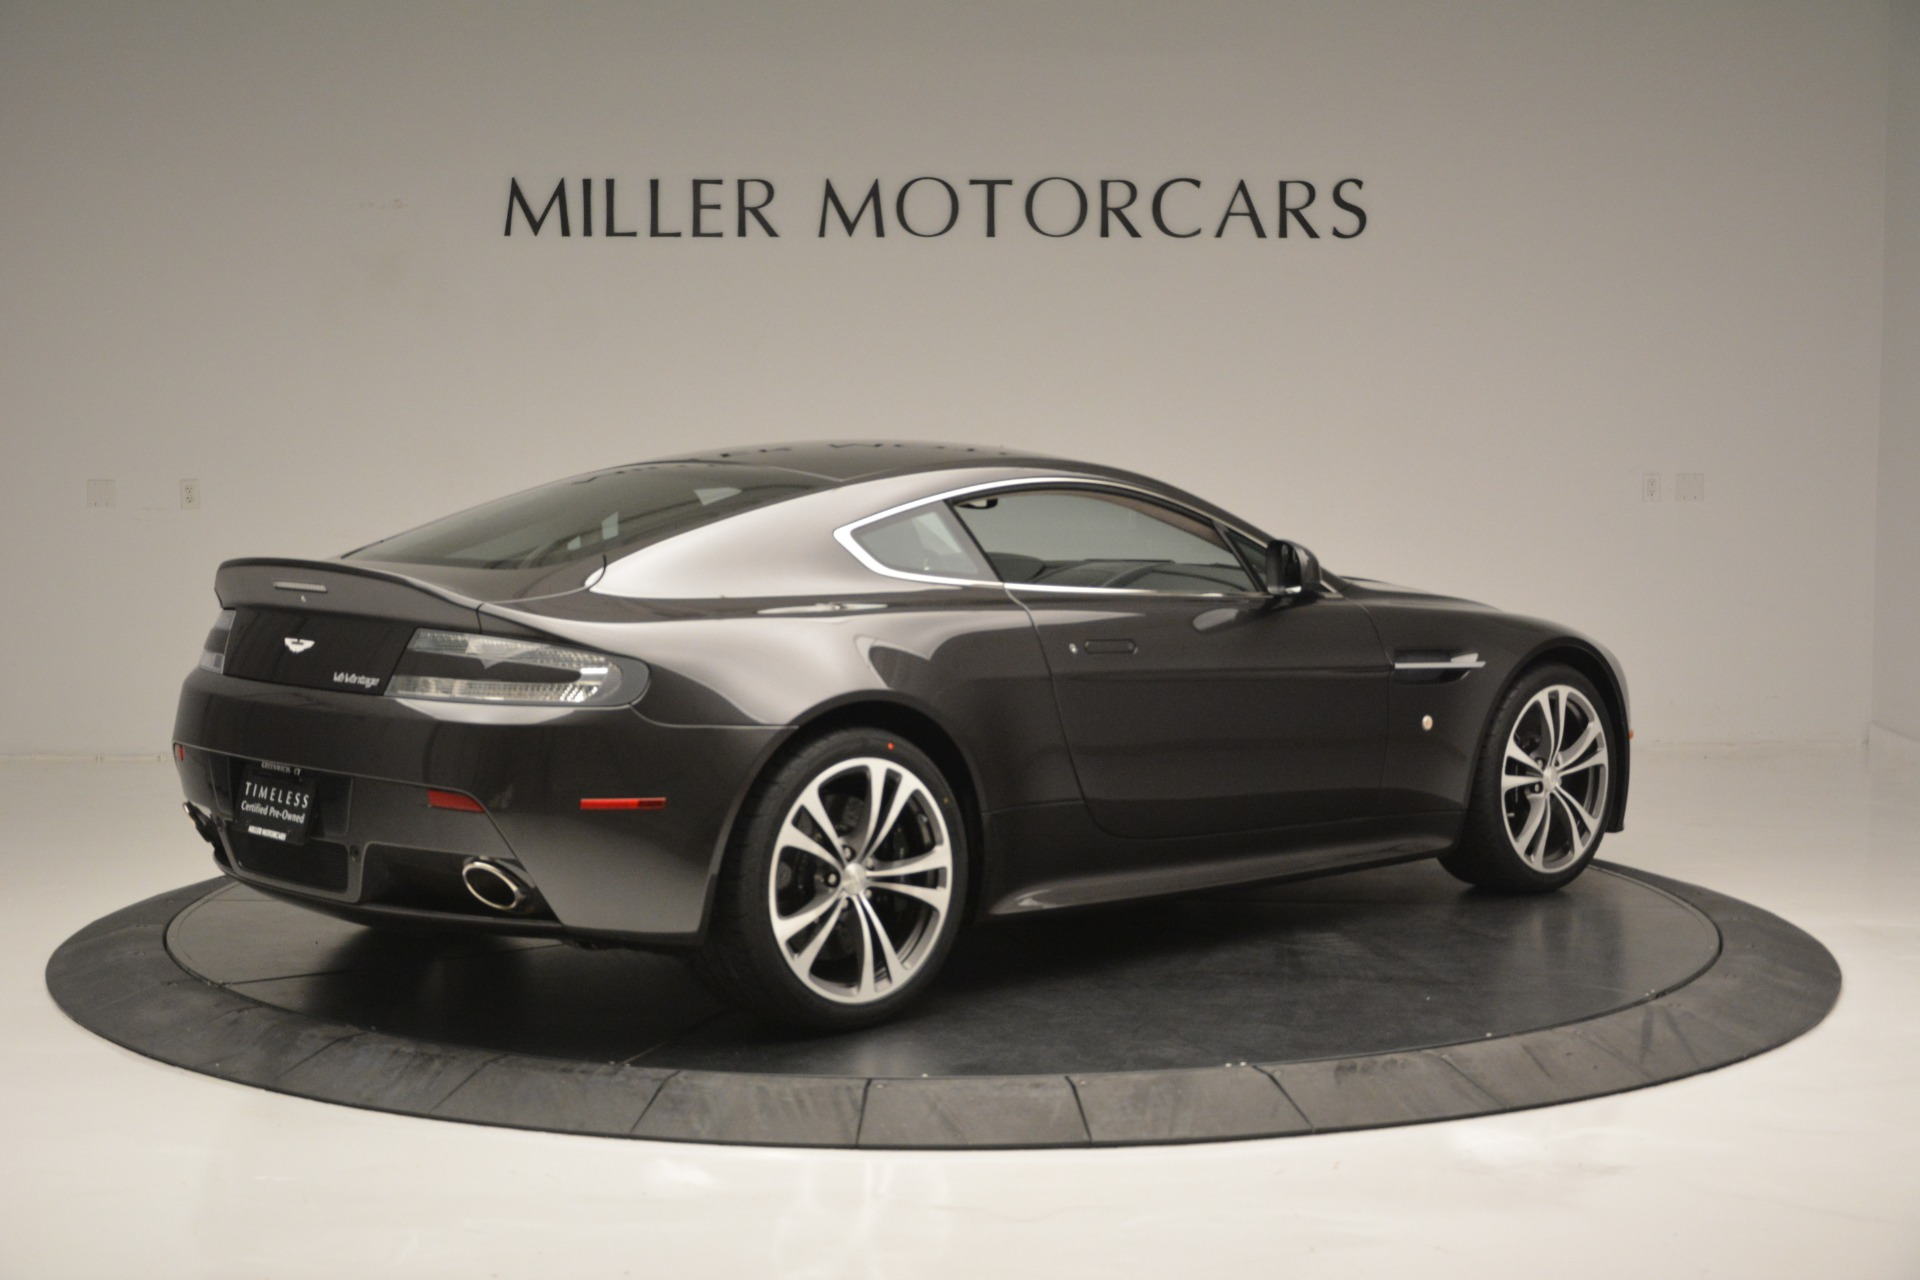 Used 2012 Aston Martin V12 Vantage Coupe For Sale In Westport, CT 2544_p8